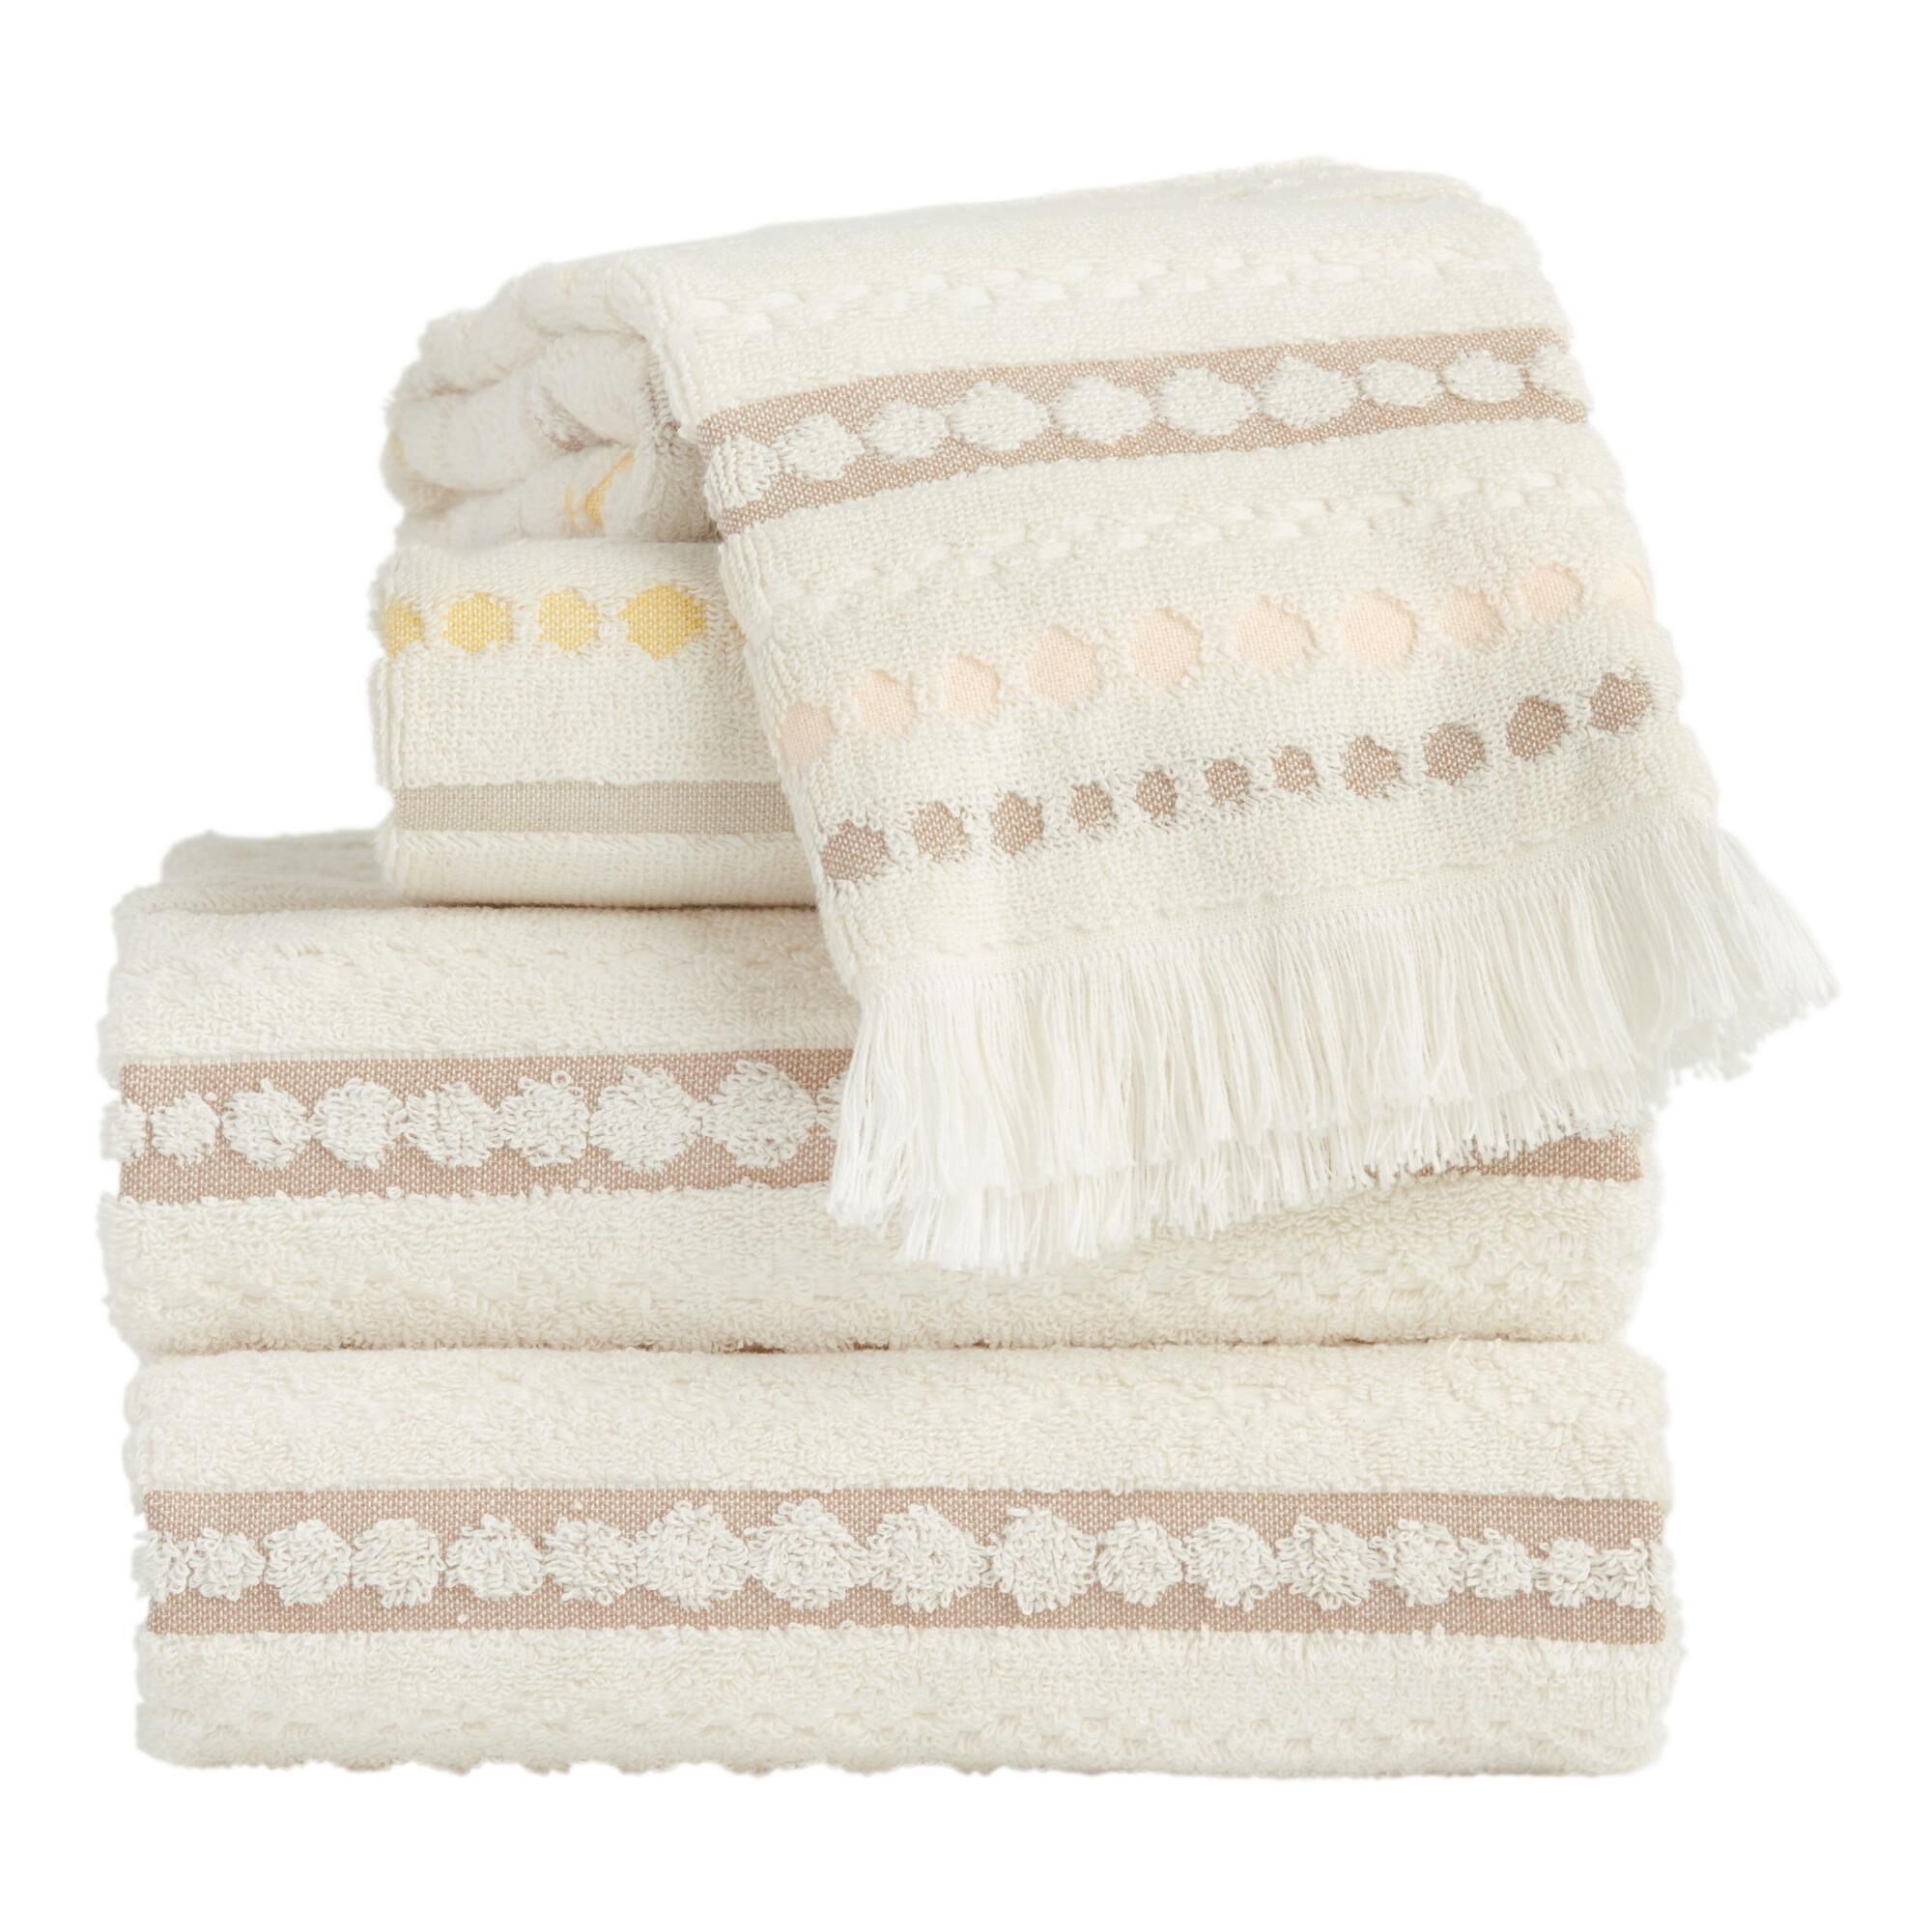 Ivory Blush And Taupe Dots And Stripes Ayla Towels Handtowel By World Market In 2020 Towel Taupe Rug Sale